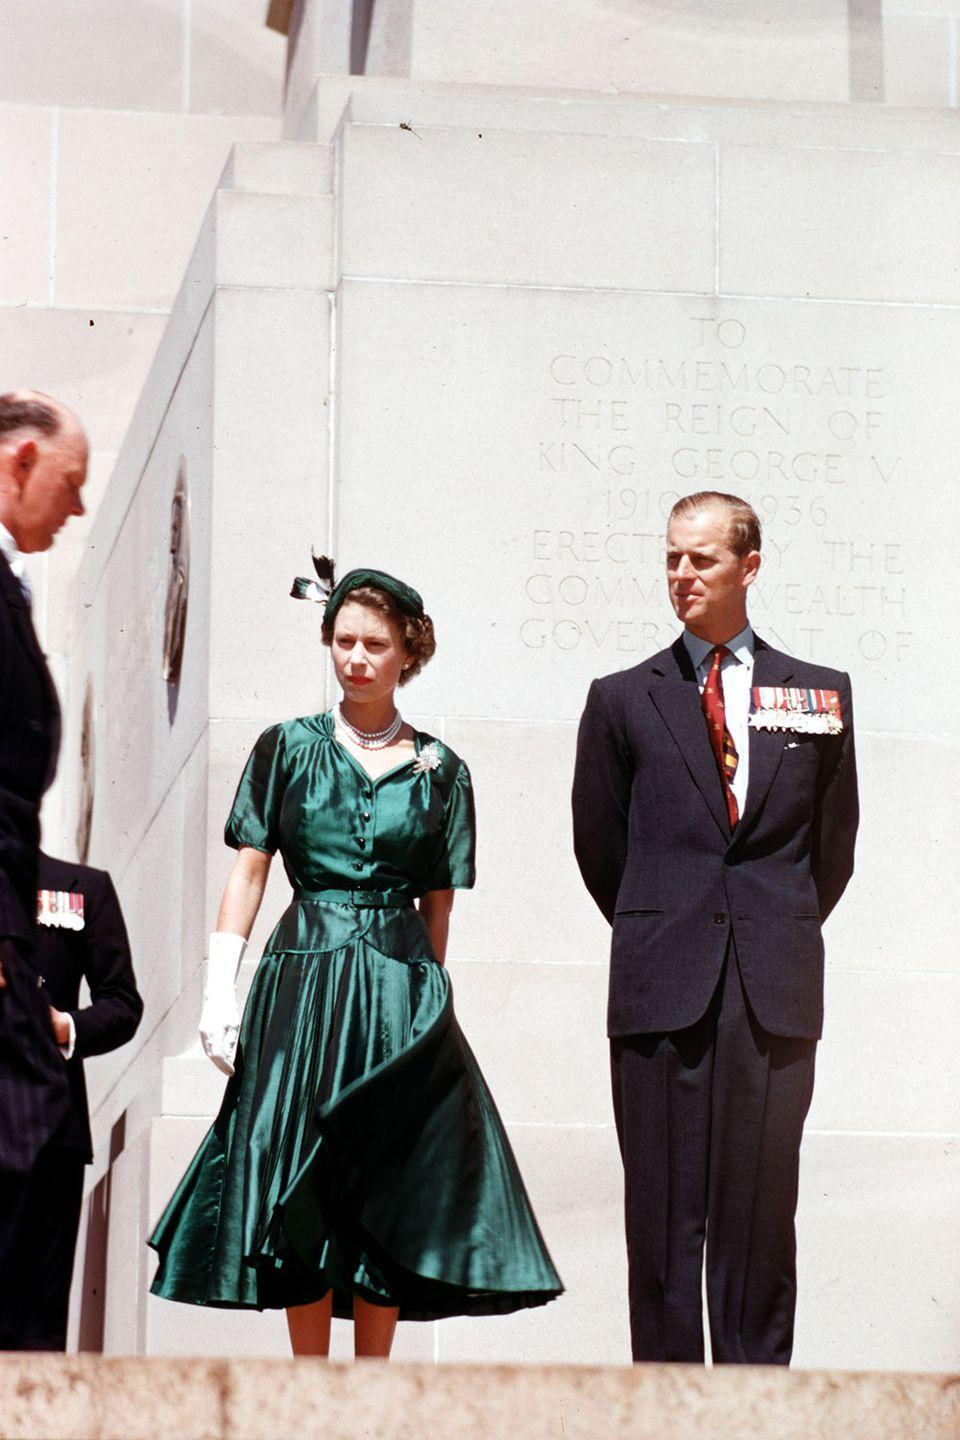 <p>During a royal tour of Australia, the queen and prince stood beneath the King George V Memorial located outside Old Parliament House. </p>